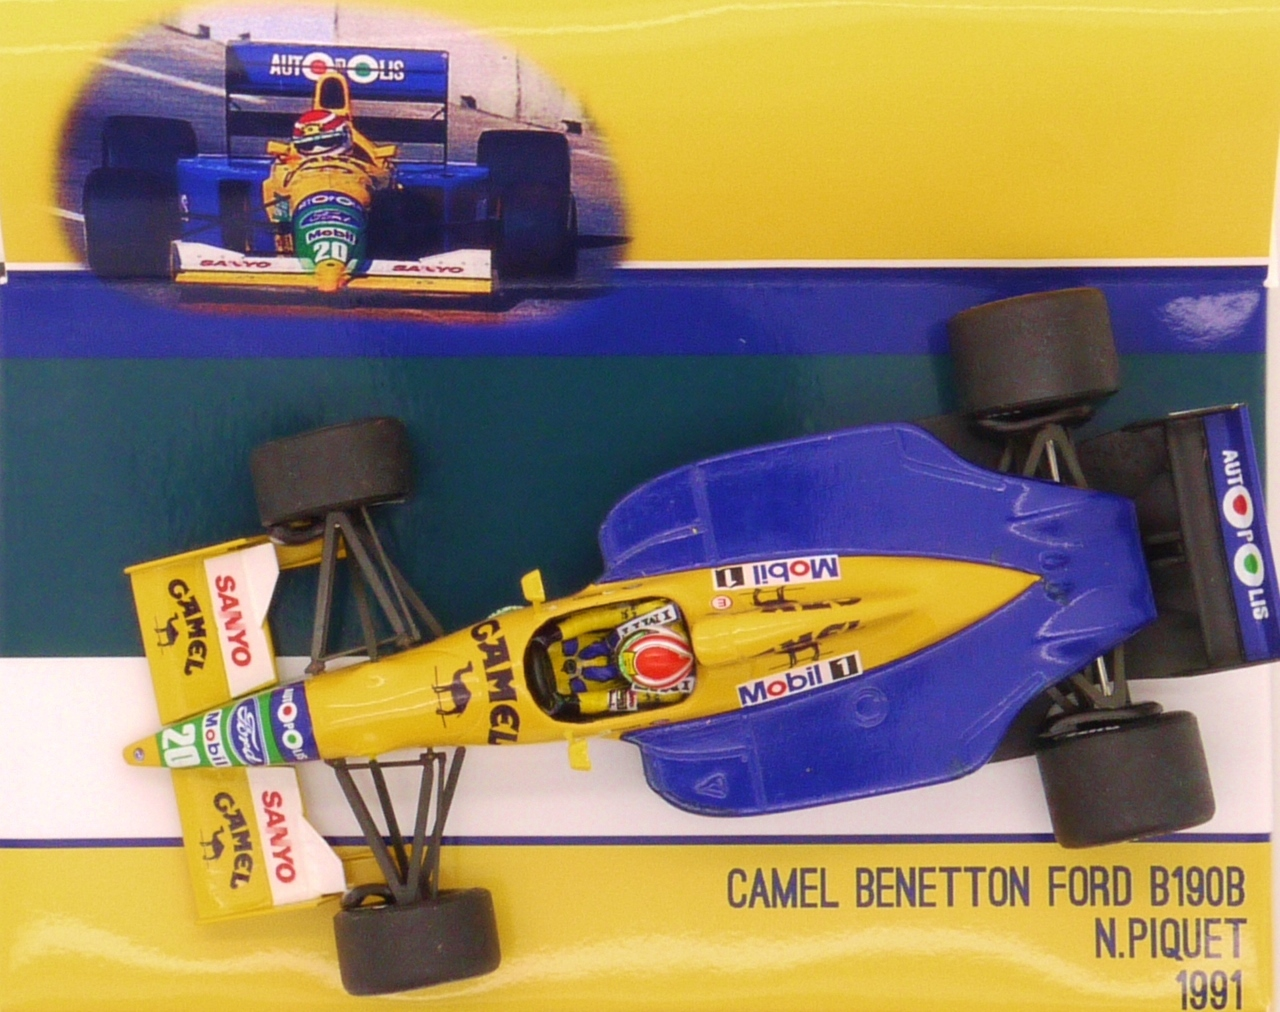 1991 tameo camel benetton ford b190 b n piquet usa gp 1 for Benetton usa online shop